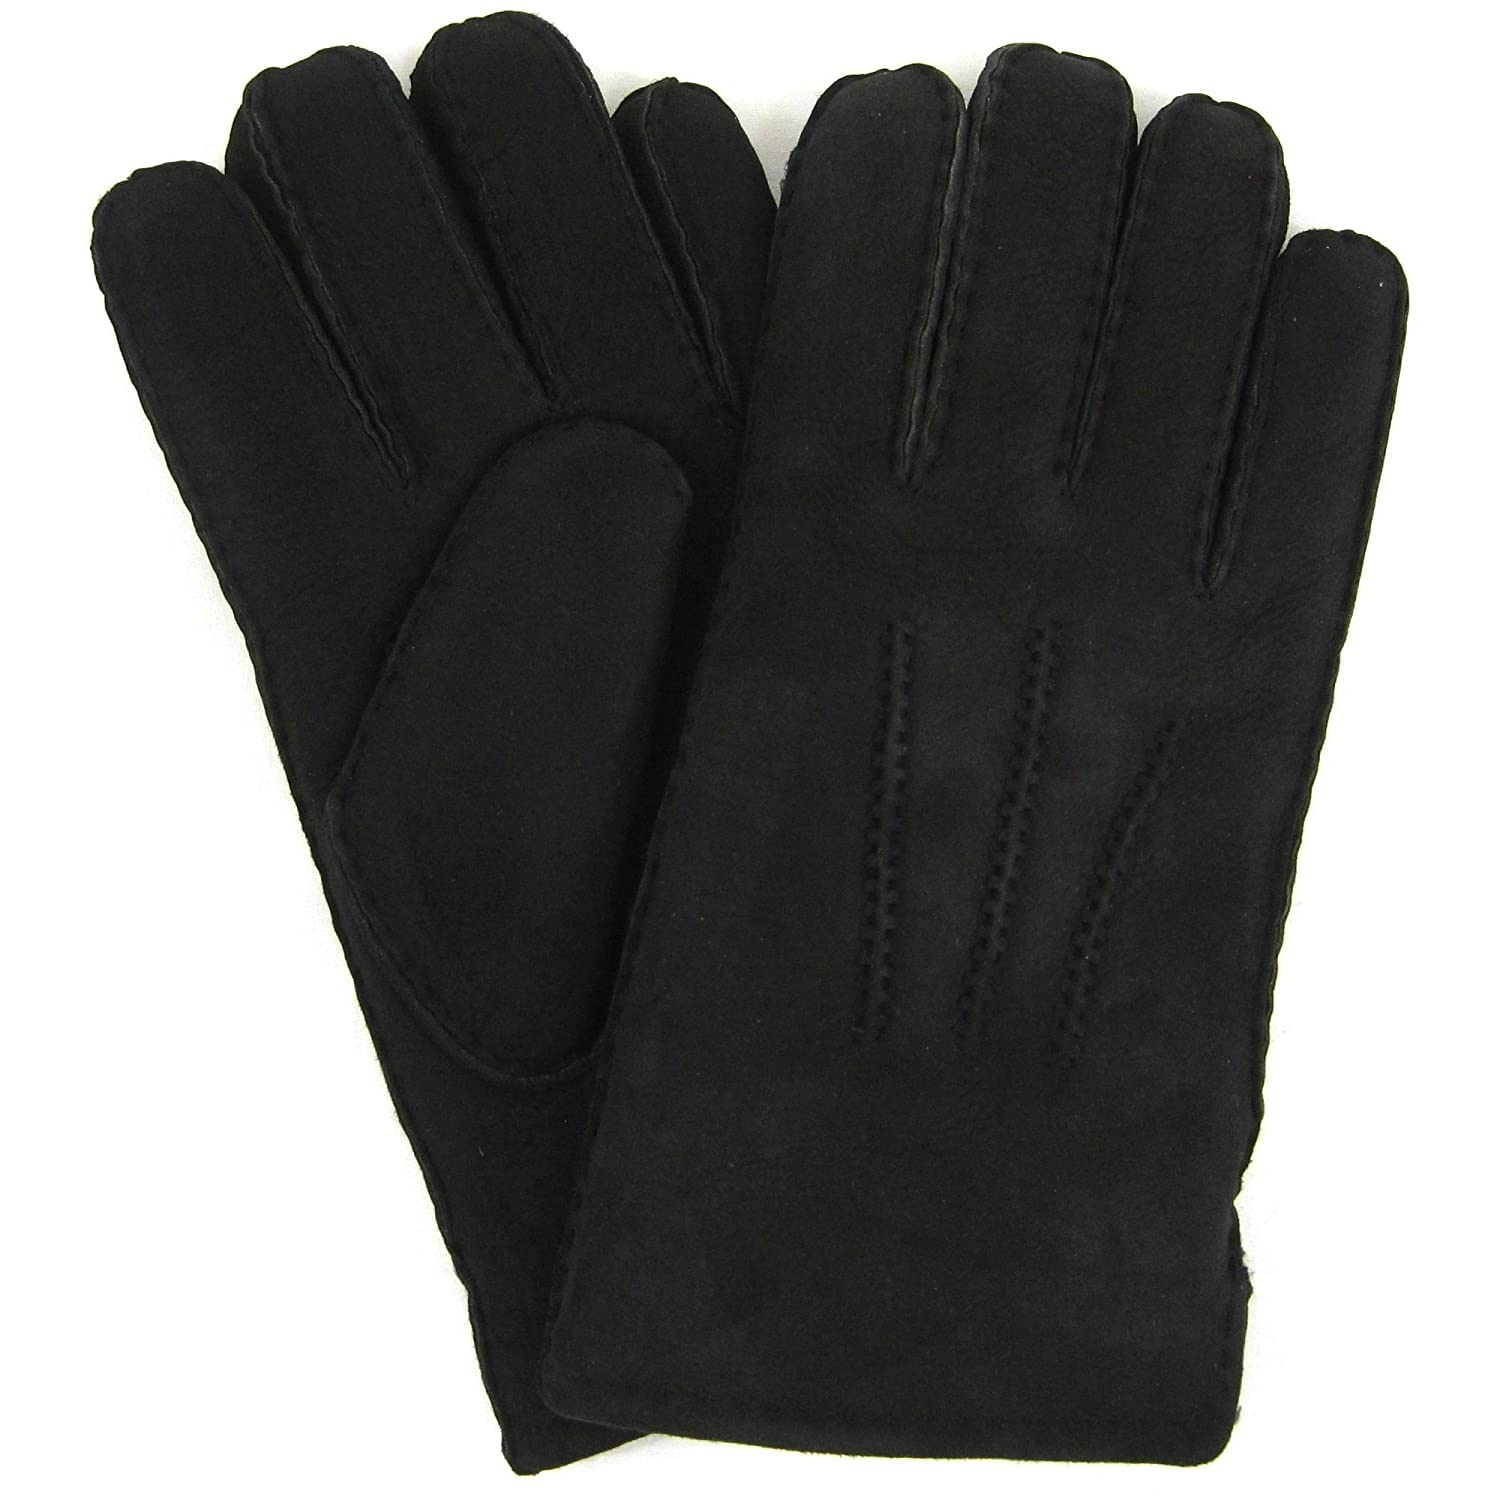 Extra small black leather gloves - Mens Luxury Full Sheepskin Gloves Black Sizes Small To Extra Large